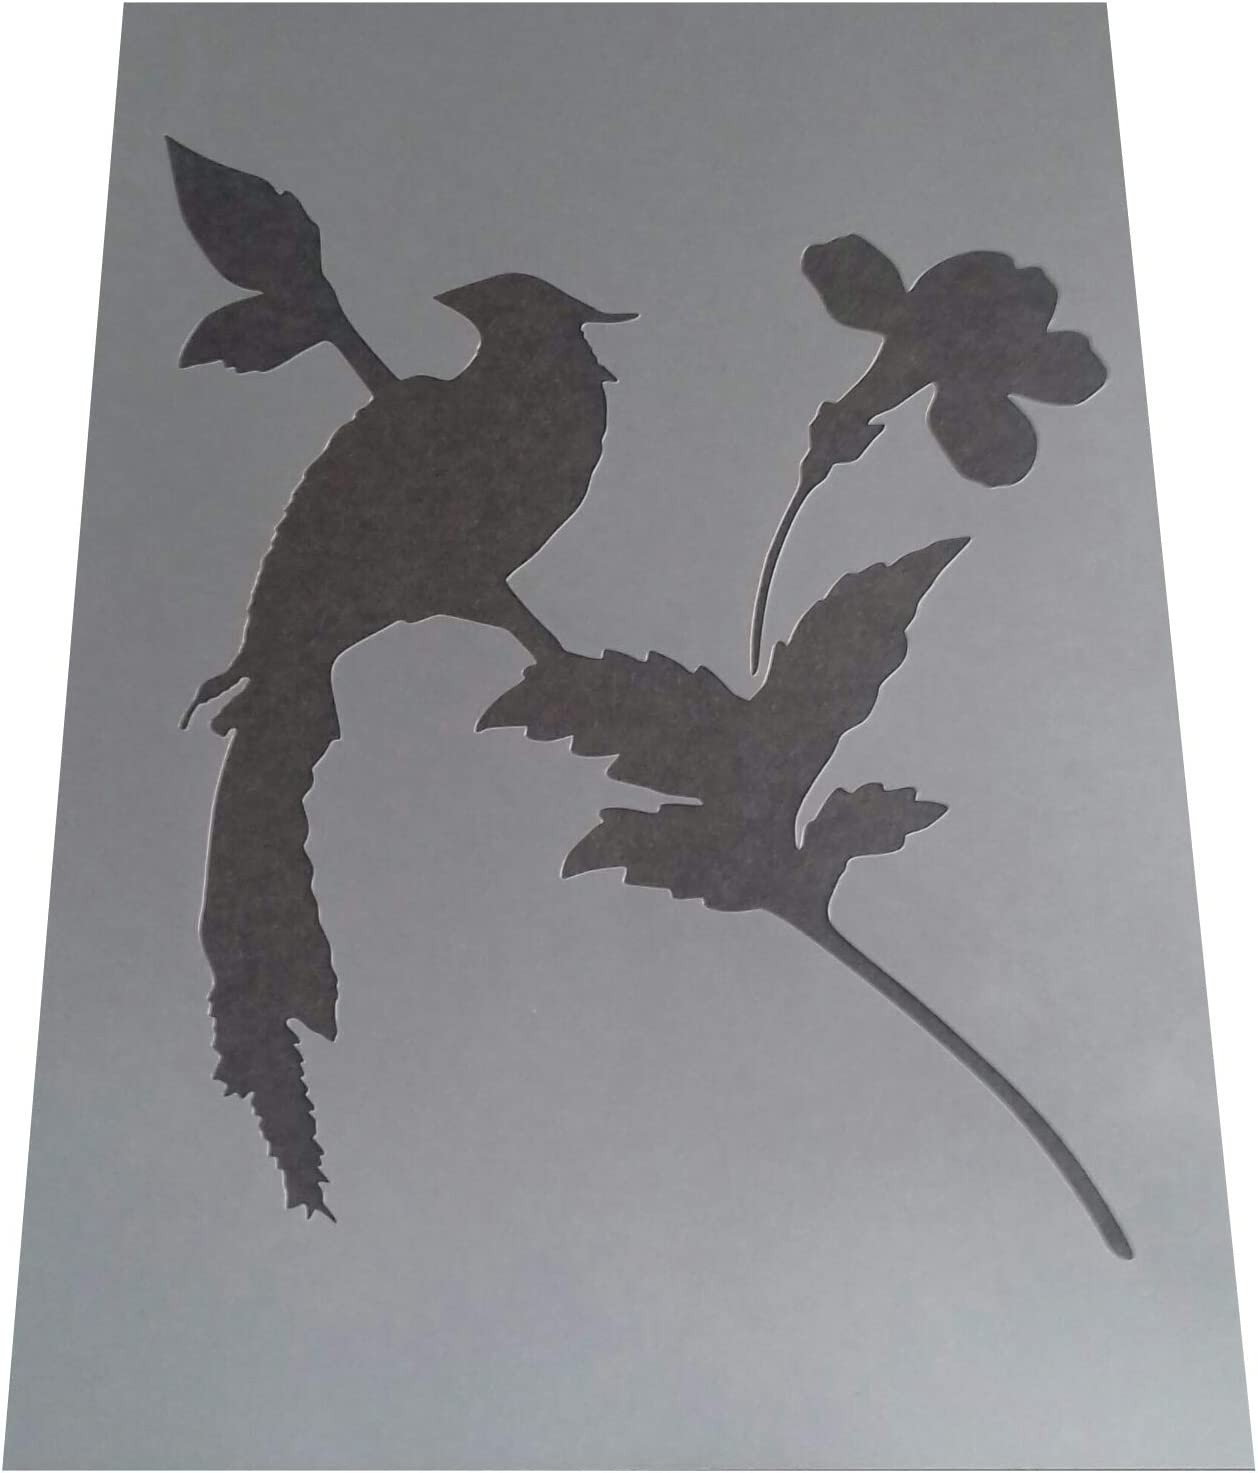 Solitarydesign Shabby Chic Stencil Long tail Bird in Tree Rustic Mylar Vintage A4 297x210mm furniture wall art